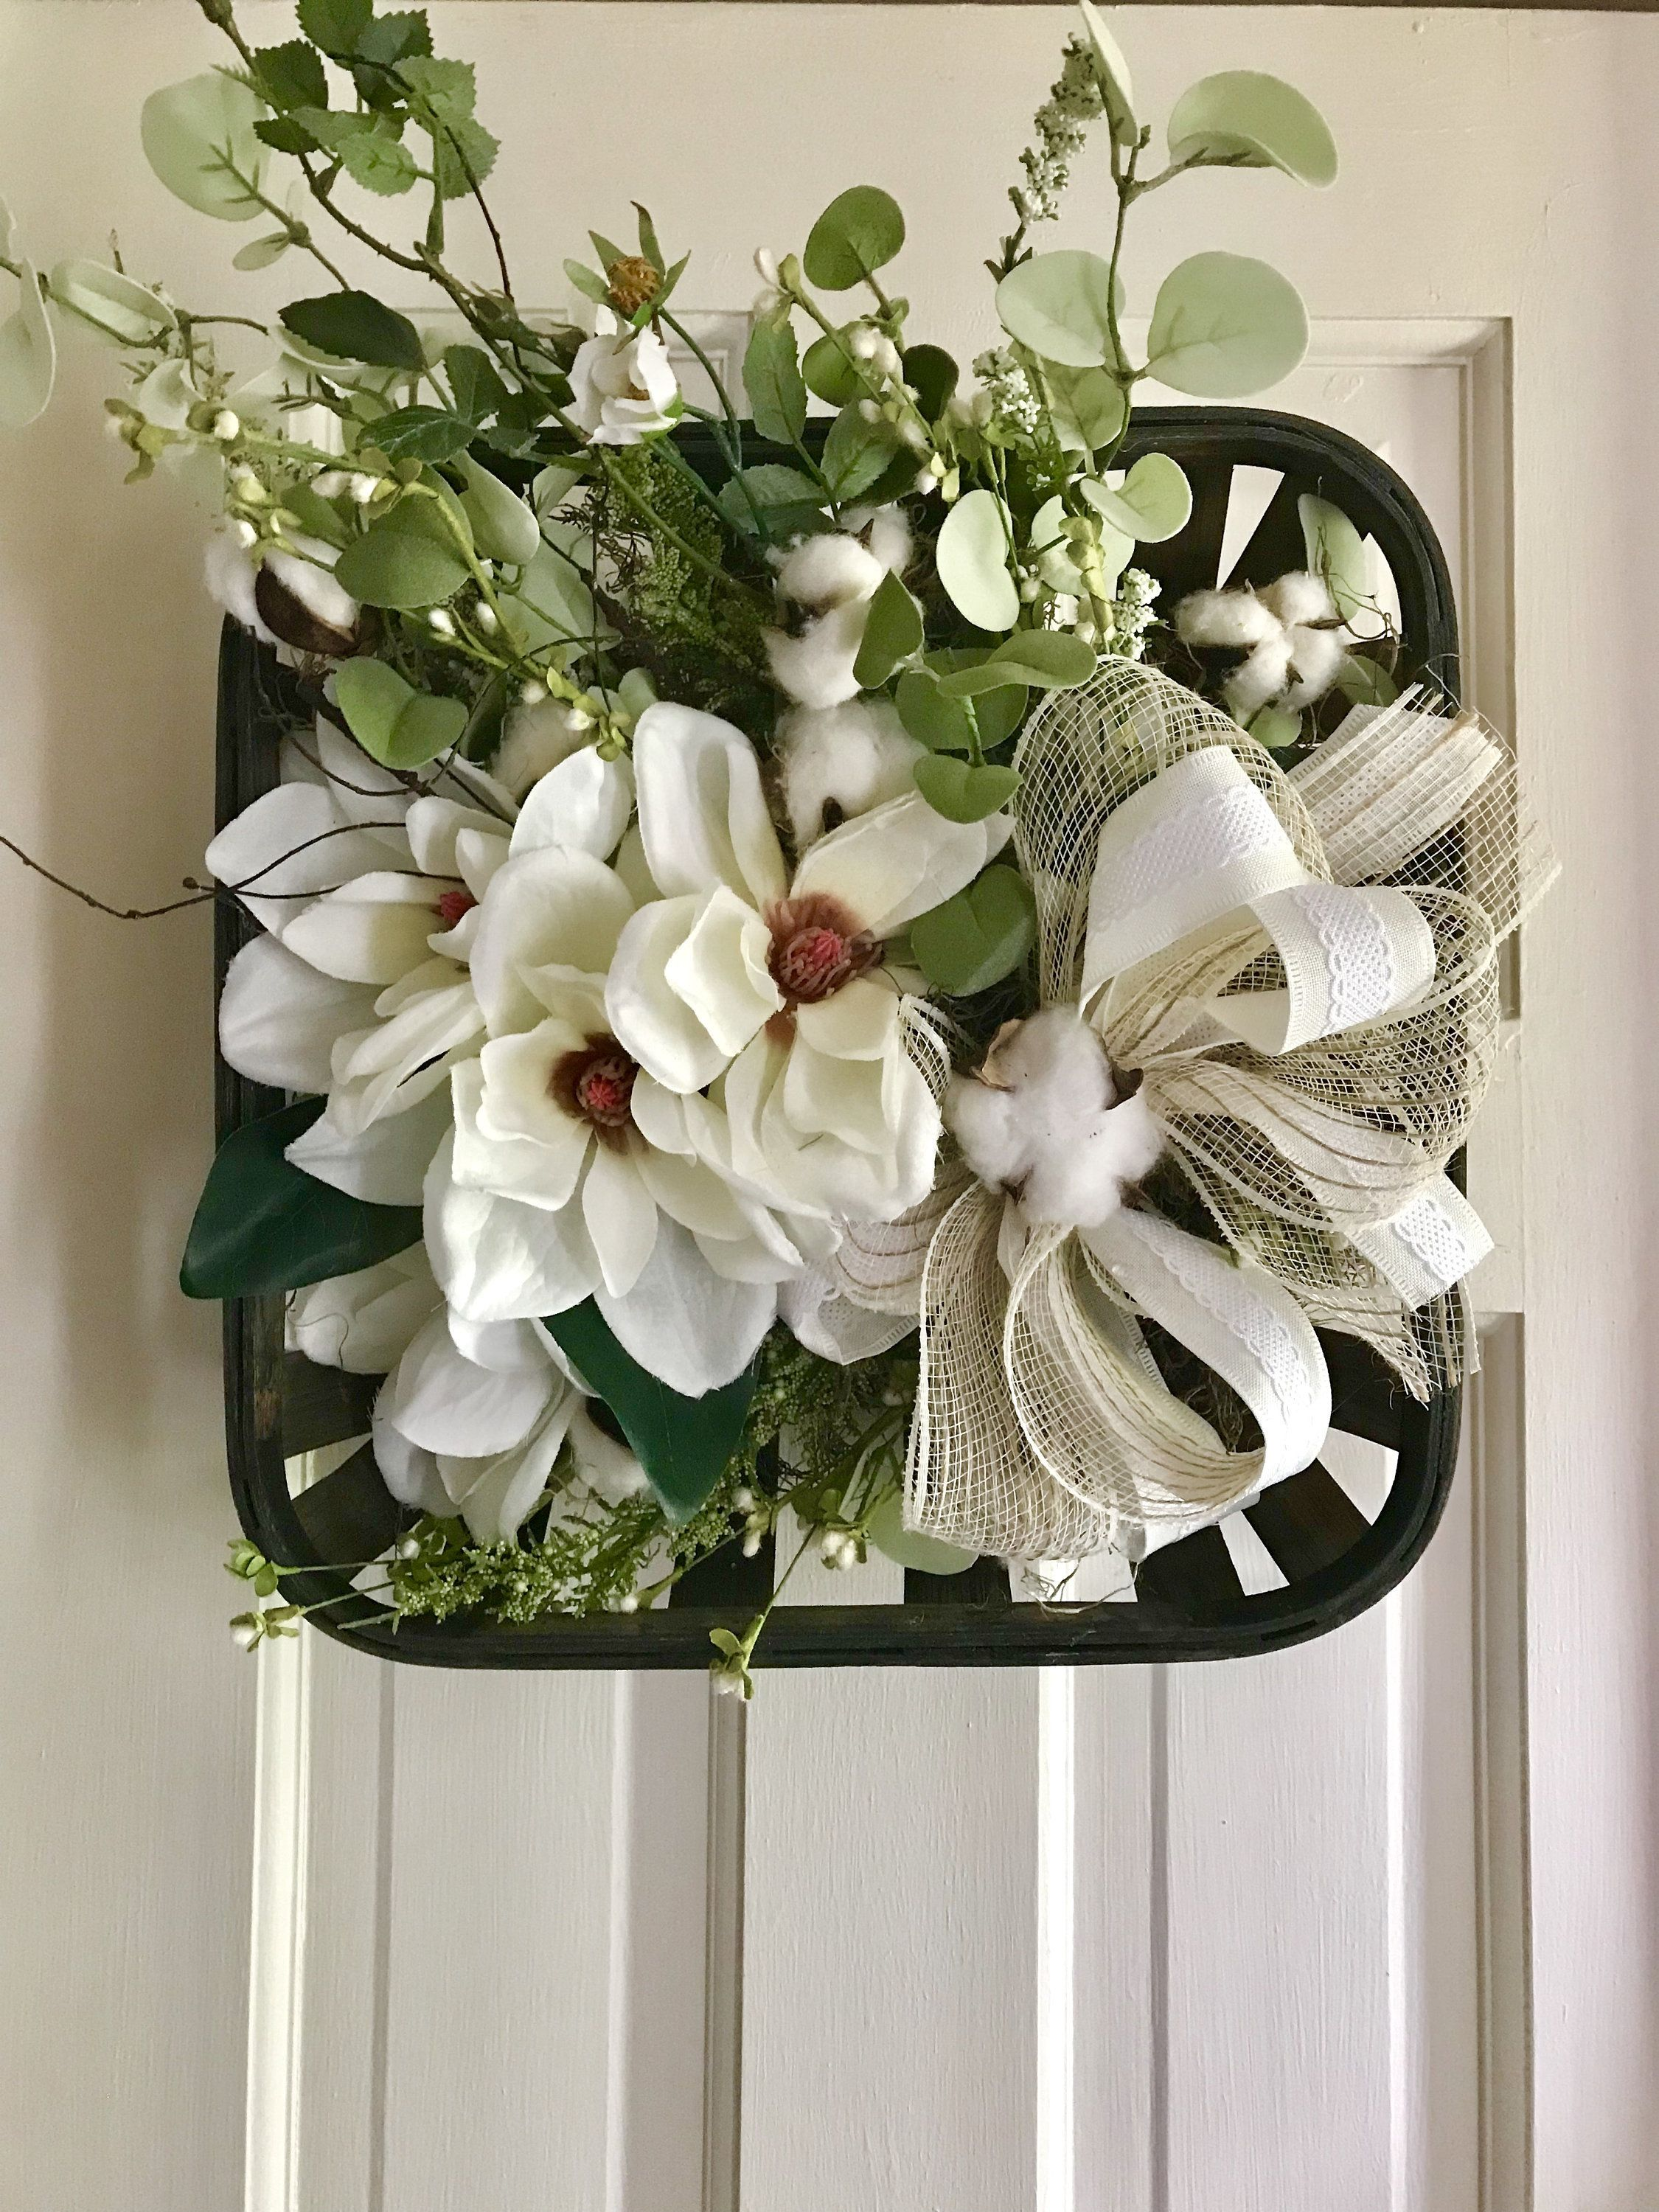 Magnolia Basket Wall Hanging   Baskets on wall, Tobacco ... on Decorative Wall Sconces For Flowers Hanging Baskets Delivery id=62727